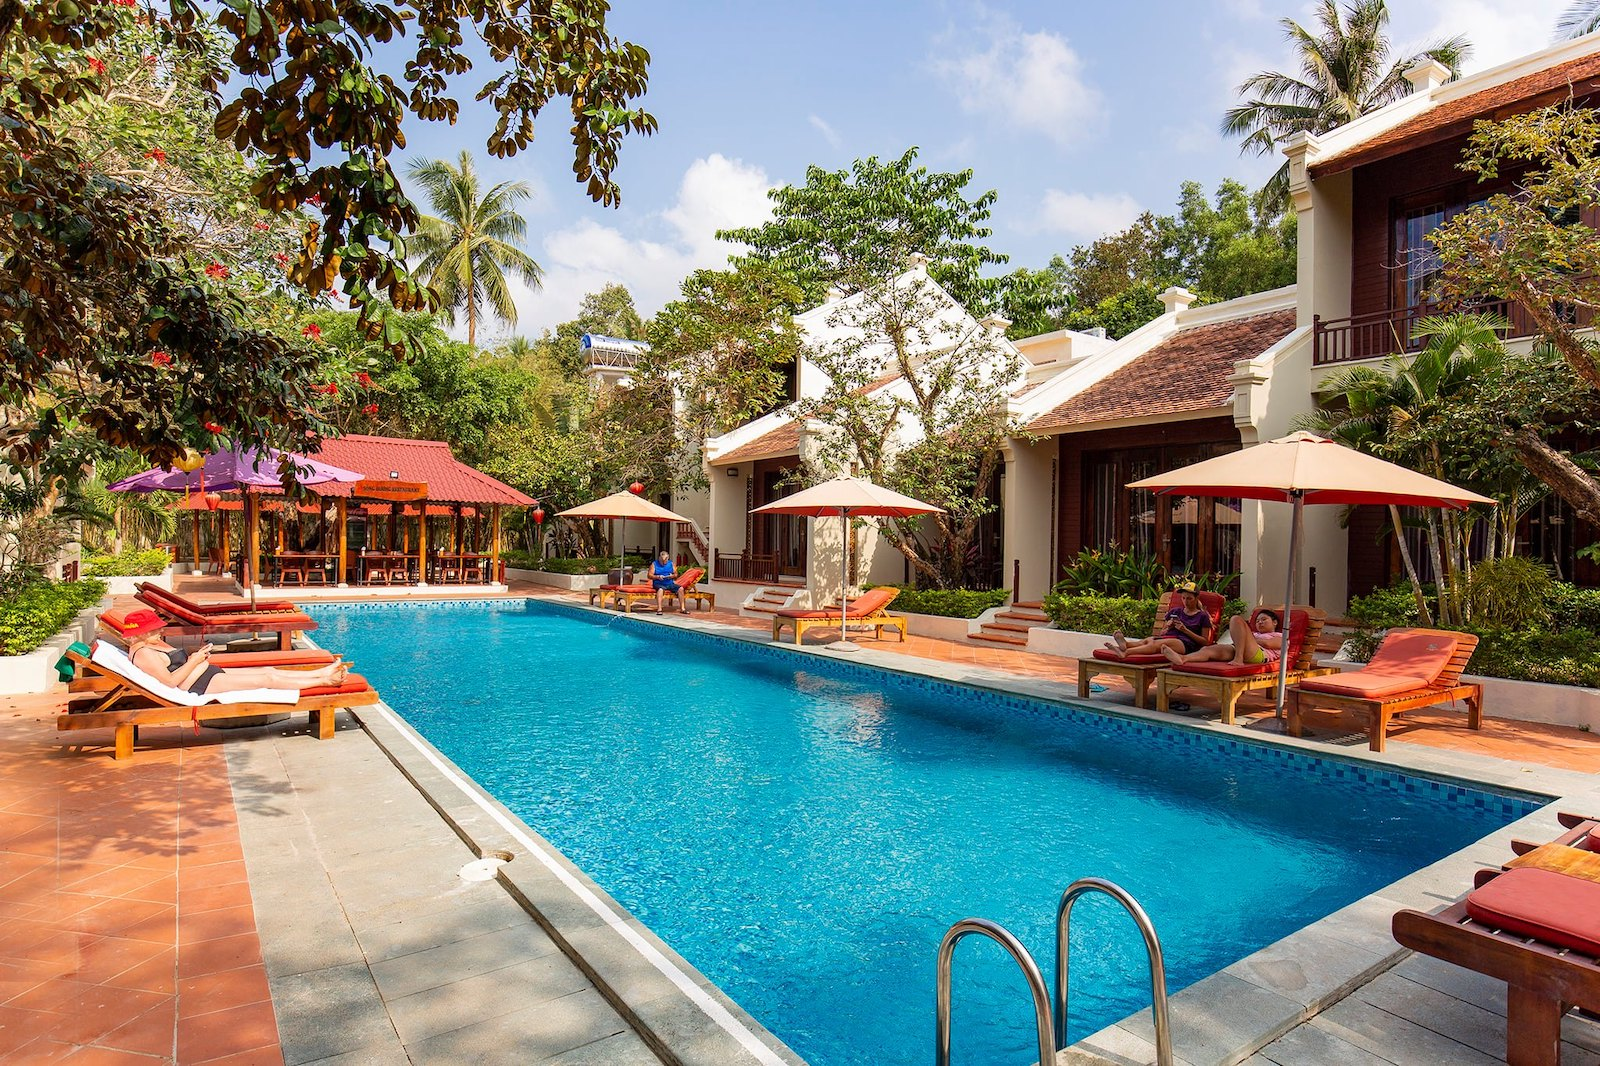 Image of the pool at the Hoi An Phu Quoc Resort in Vietnam